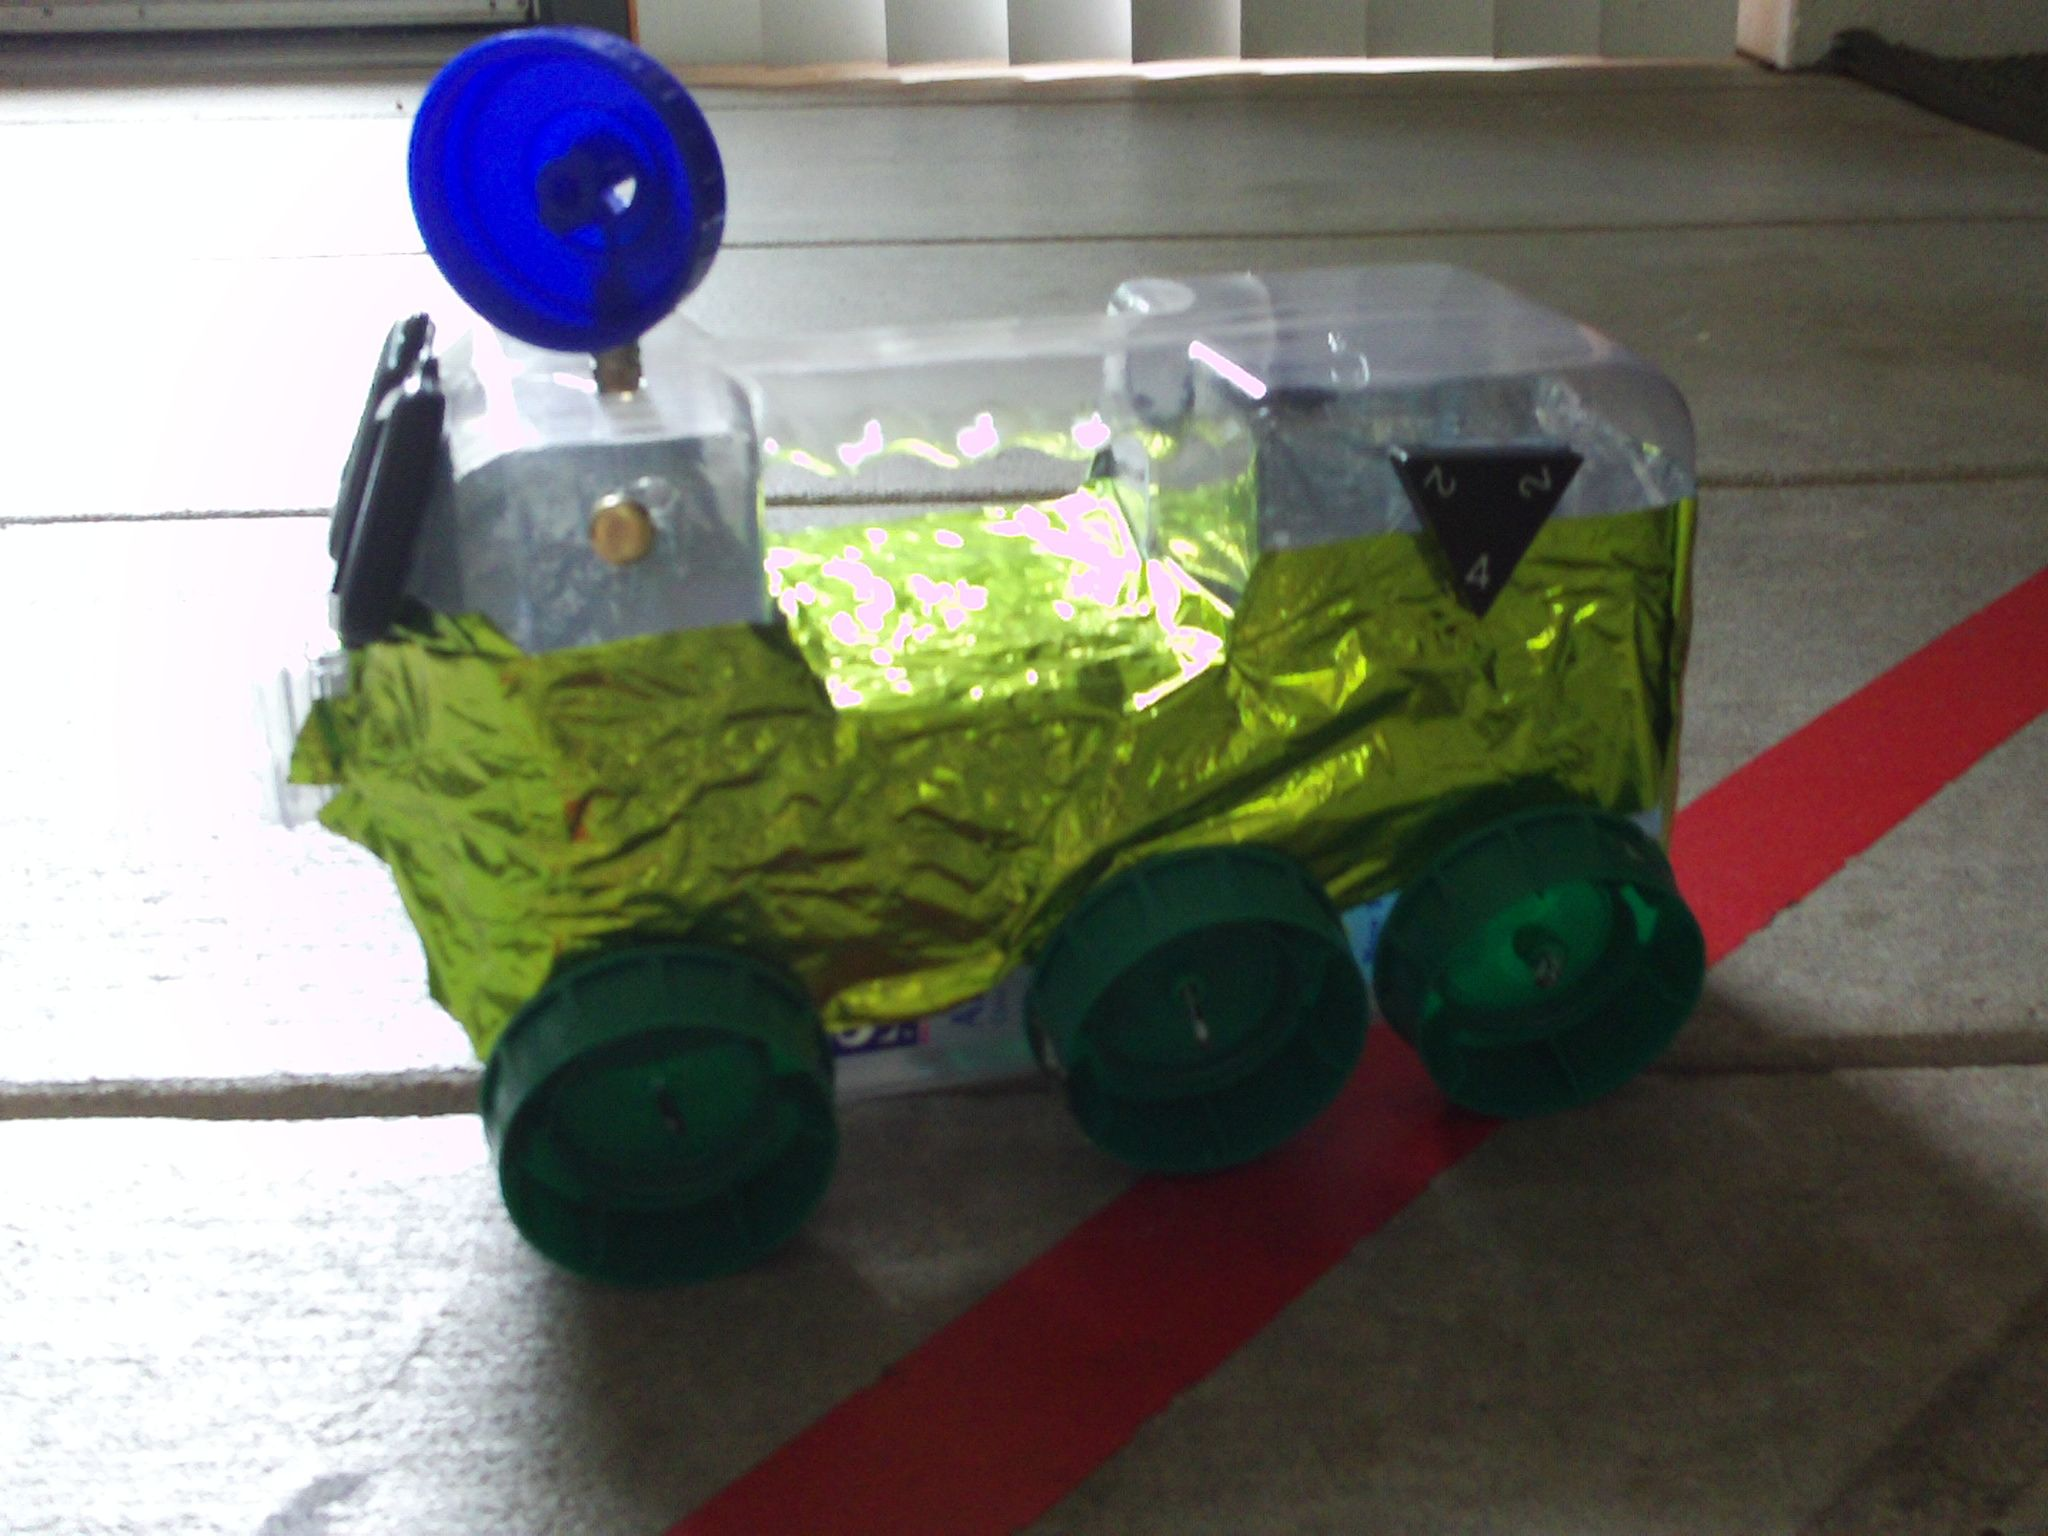 Moon Buggy Diy Mars Rovers For Kid Ex Art And Nature Crafts Science